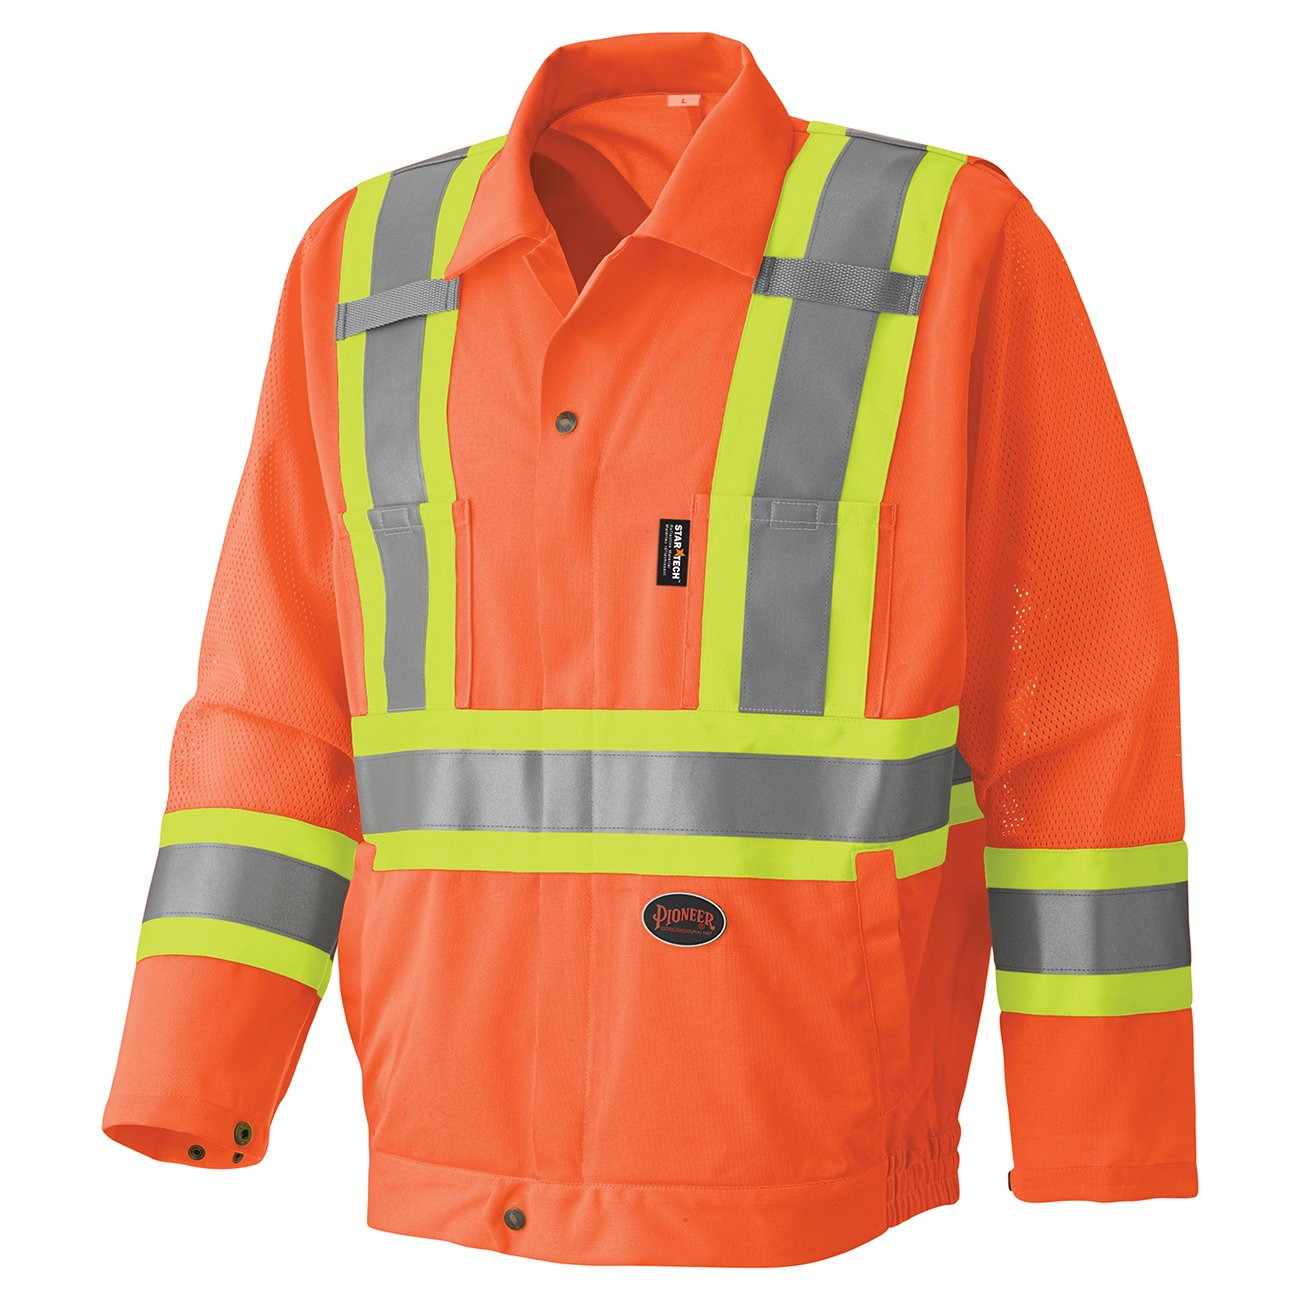 Pioneer Hi-Viz Traffic Safety Jacket V1070250 - 6001J